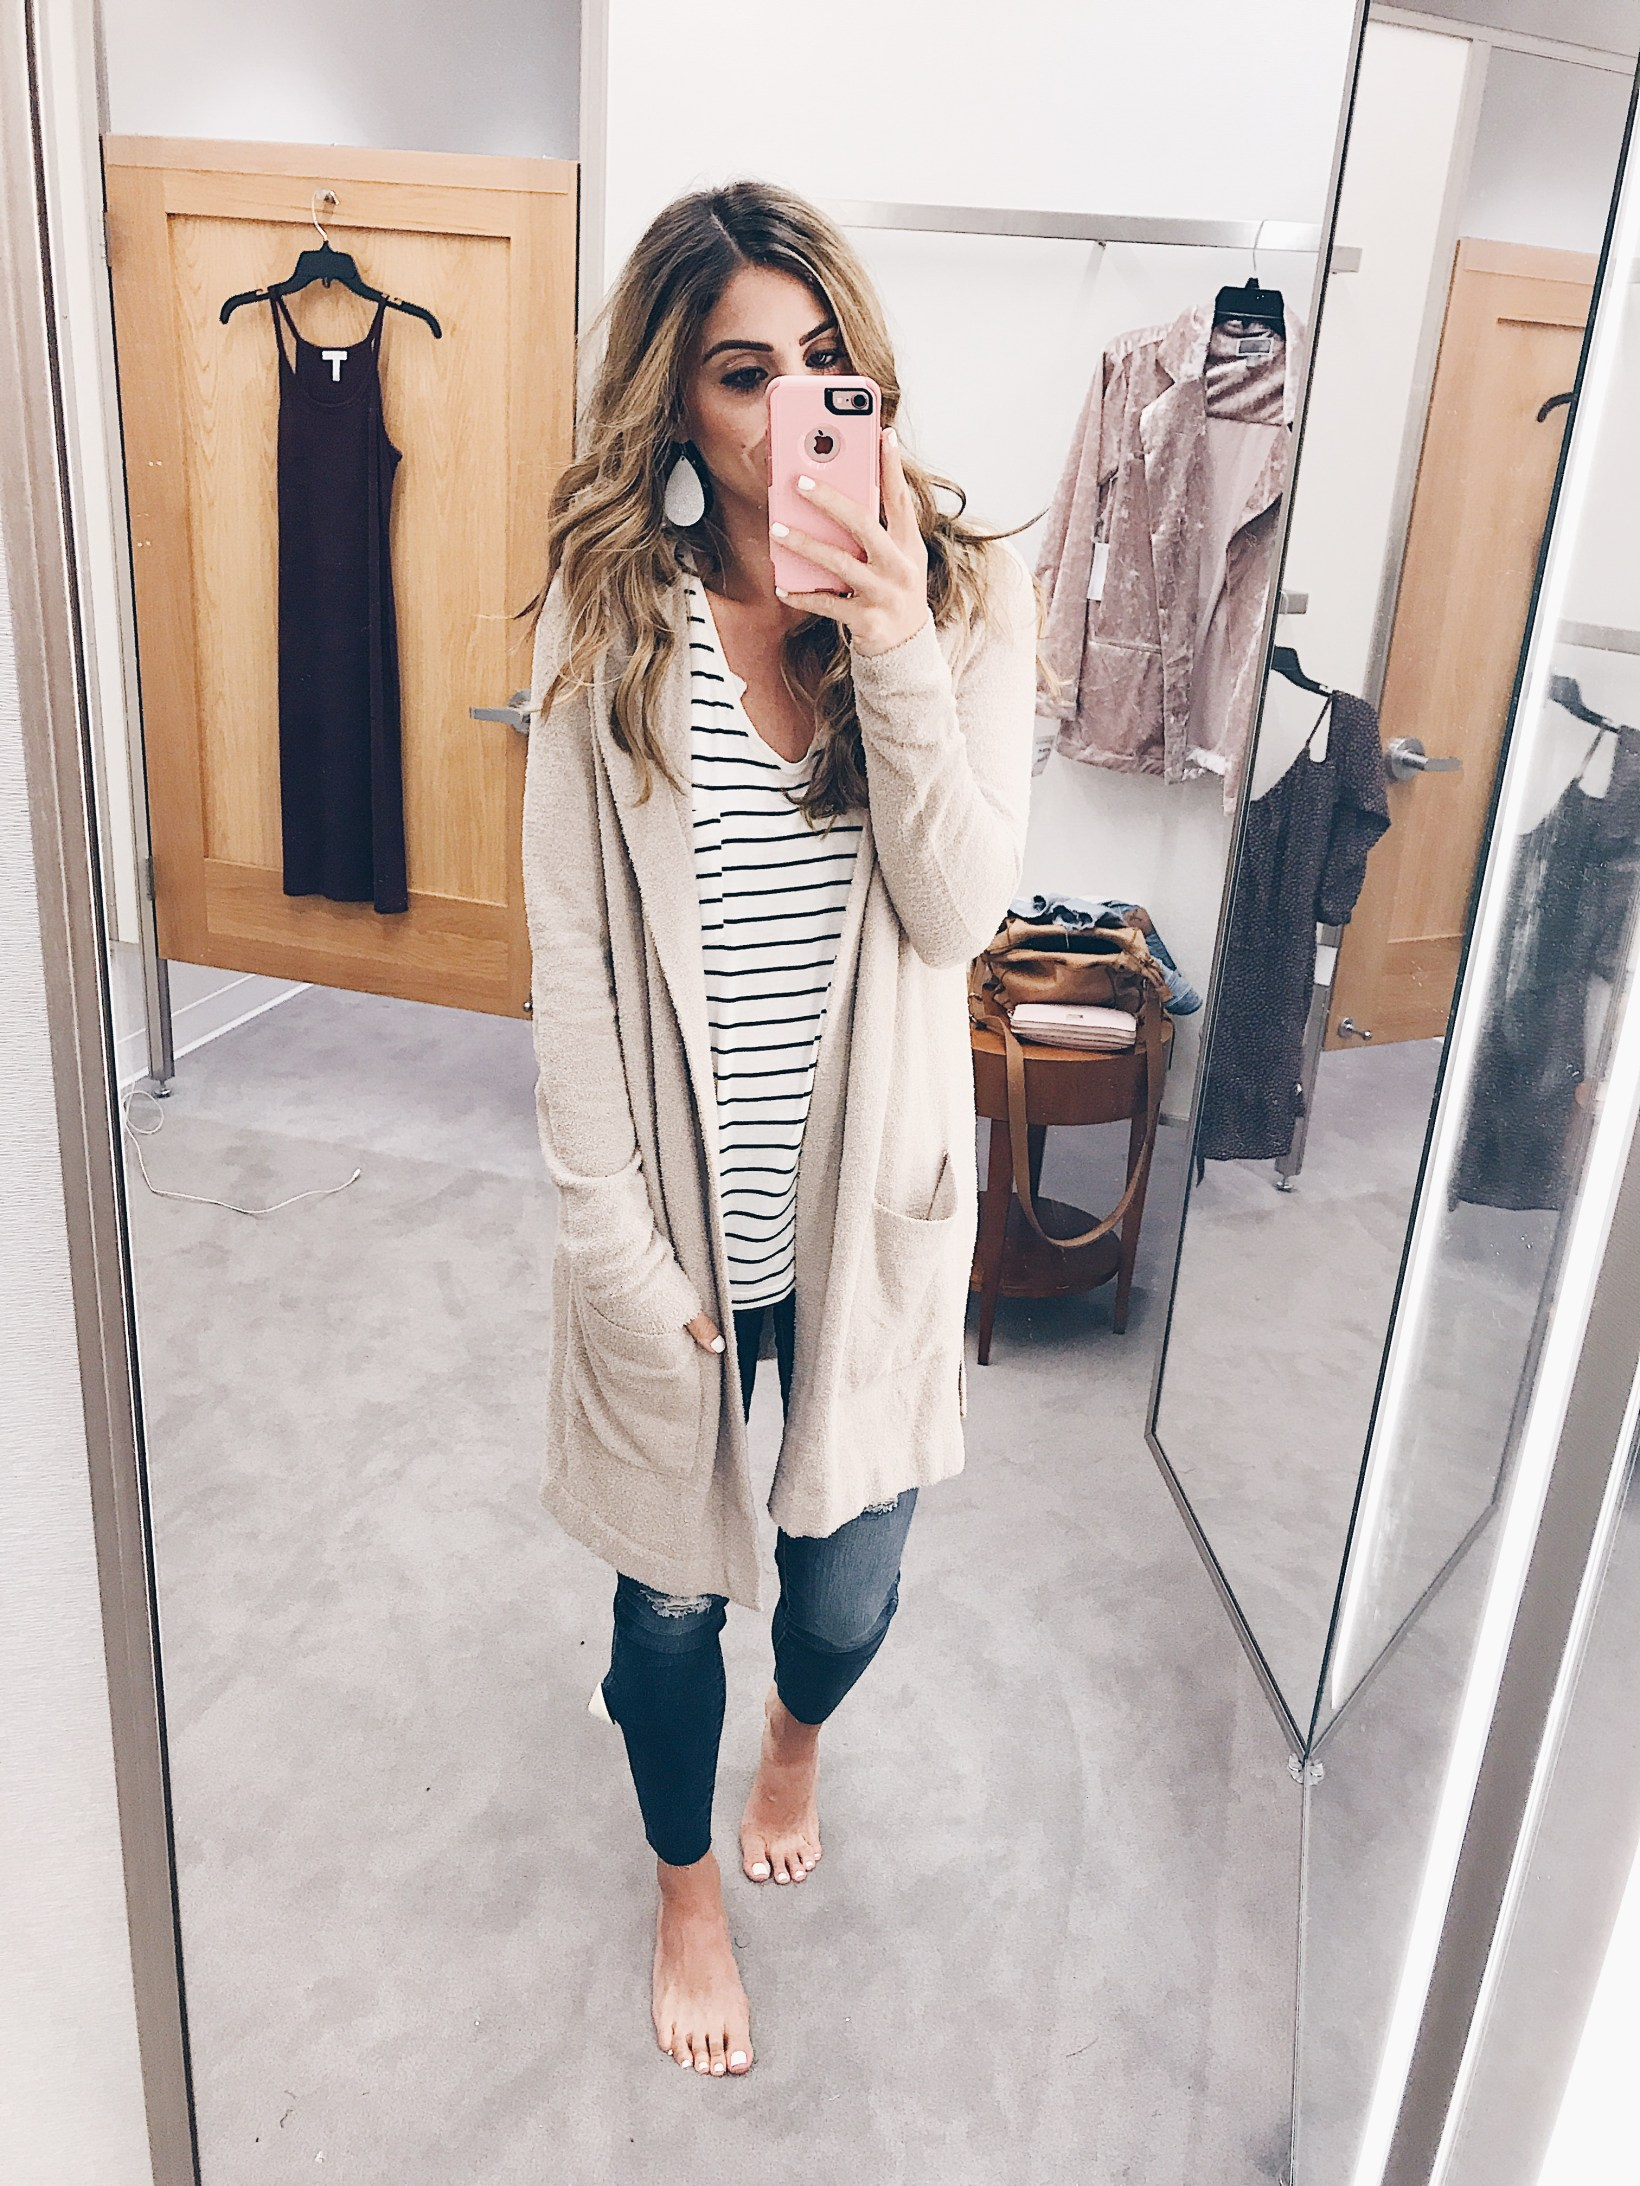 Life and style blogger Lauren McBride shares her top loved items from the year 2017.